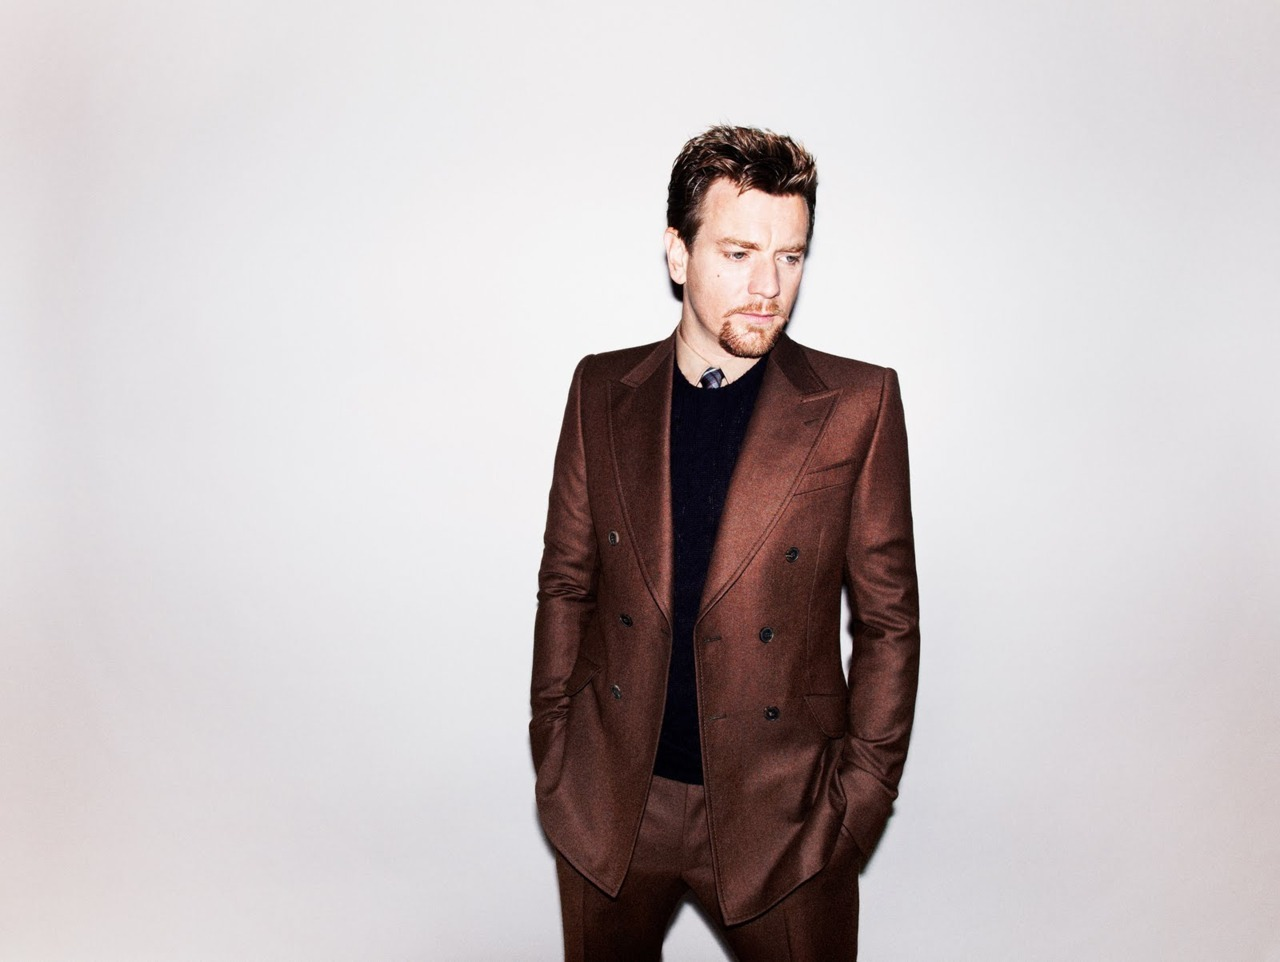 fuckingawesomewan:  Ewan McGregor by David Titlow for 'Esquire magazine', 2011. (via dailytitlow)